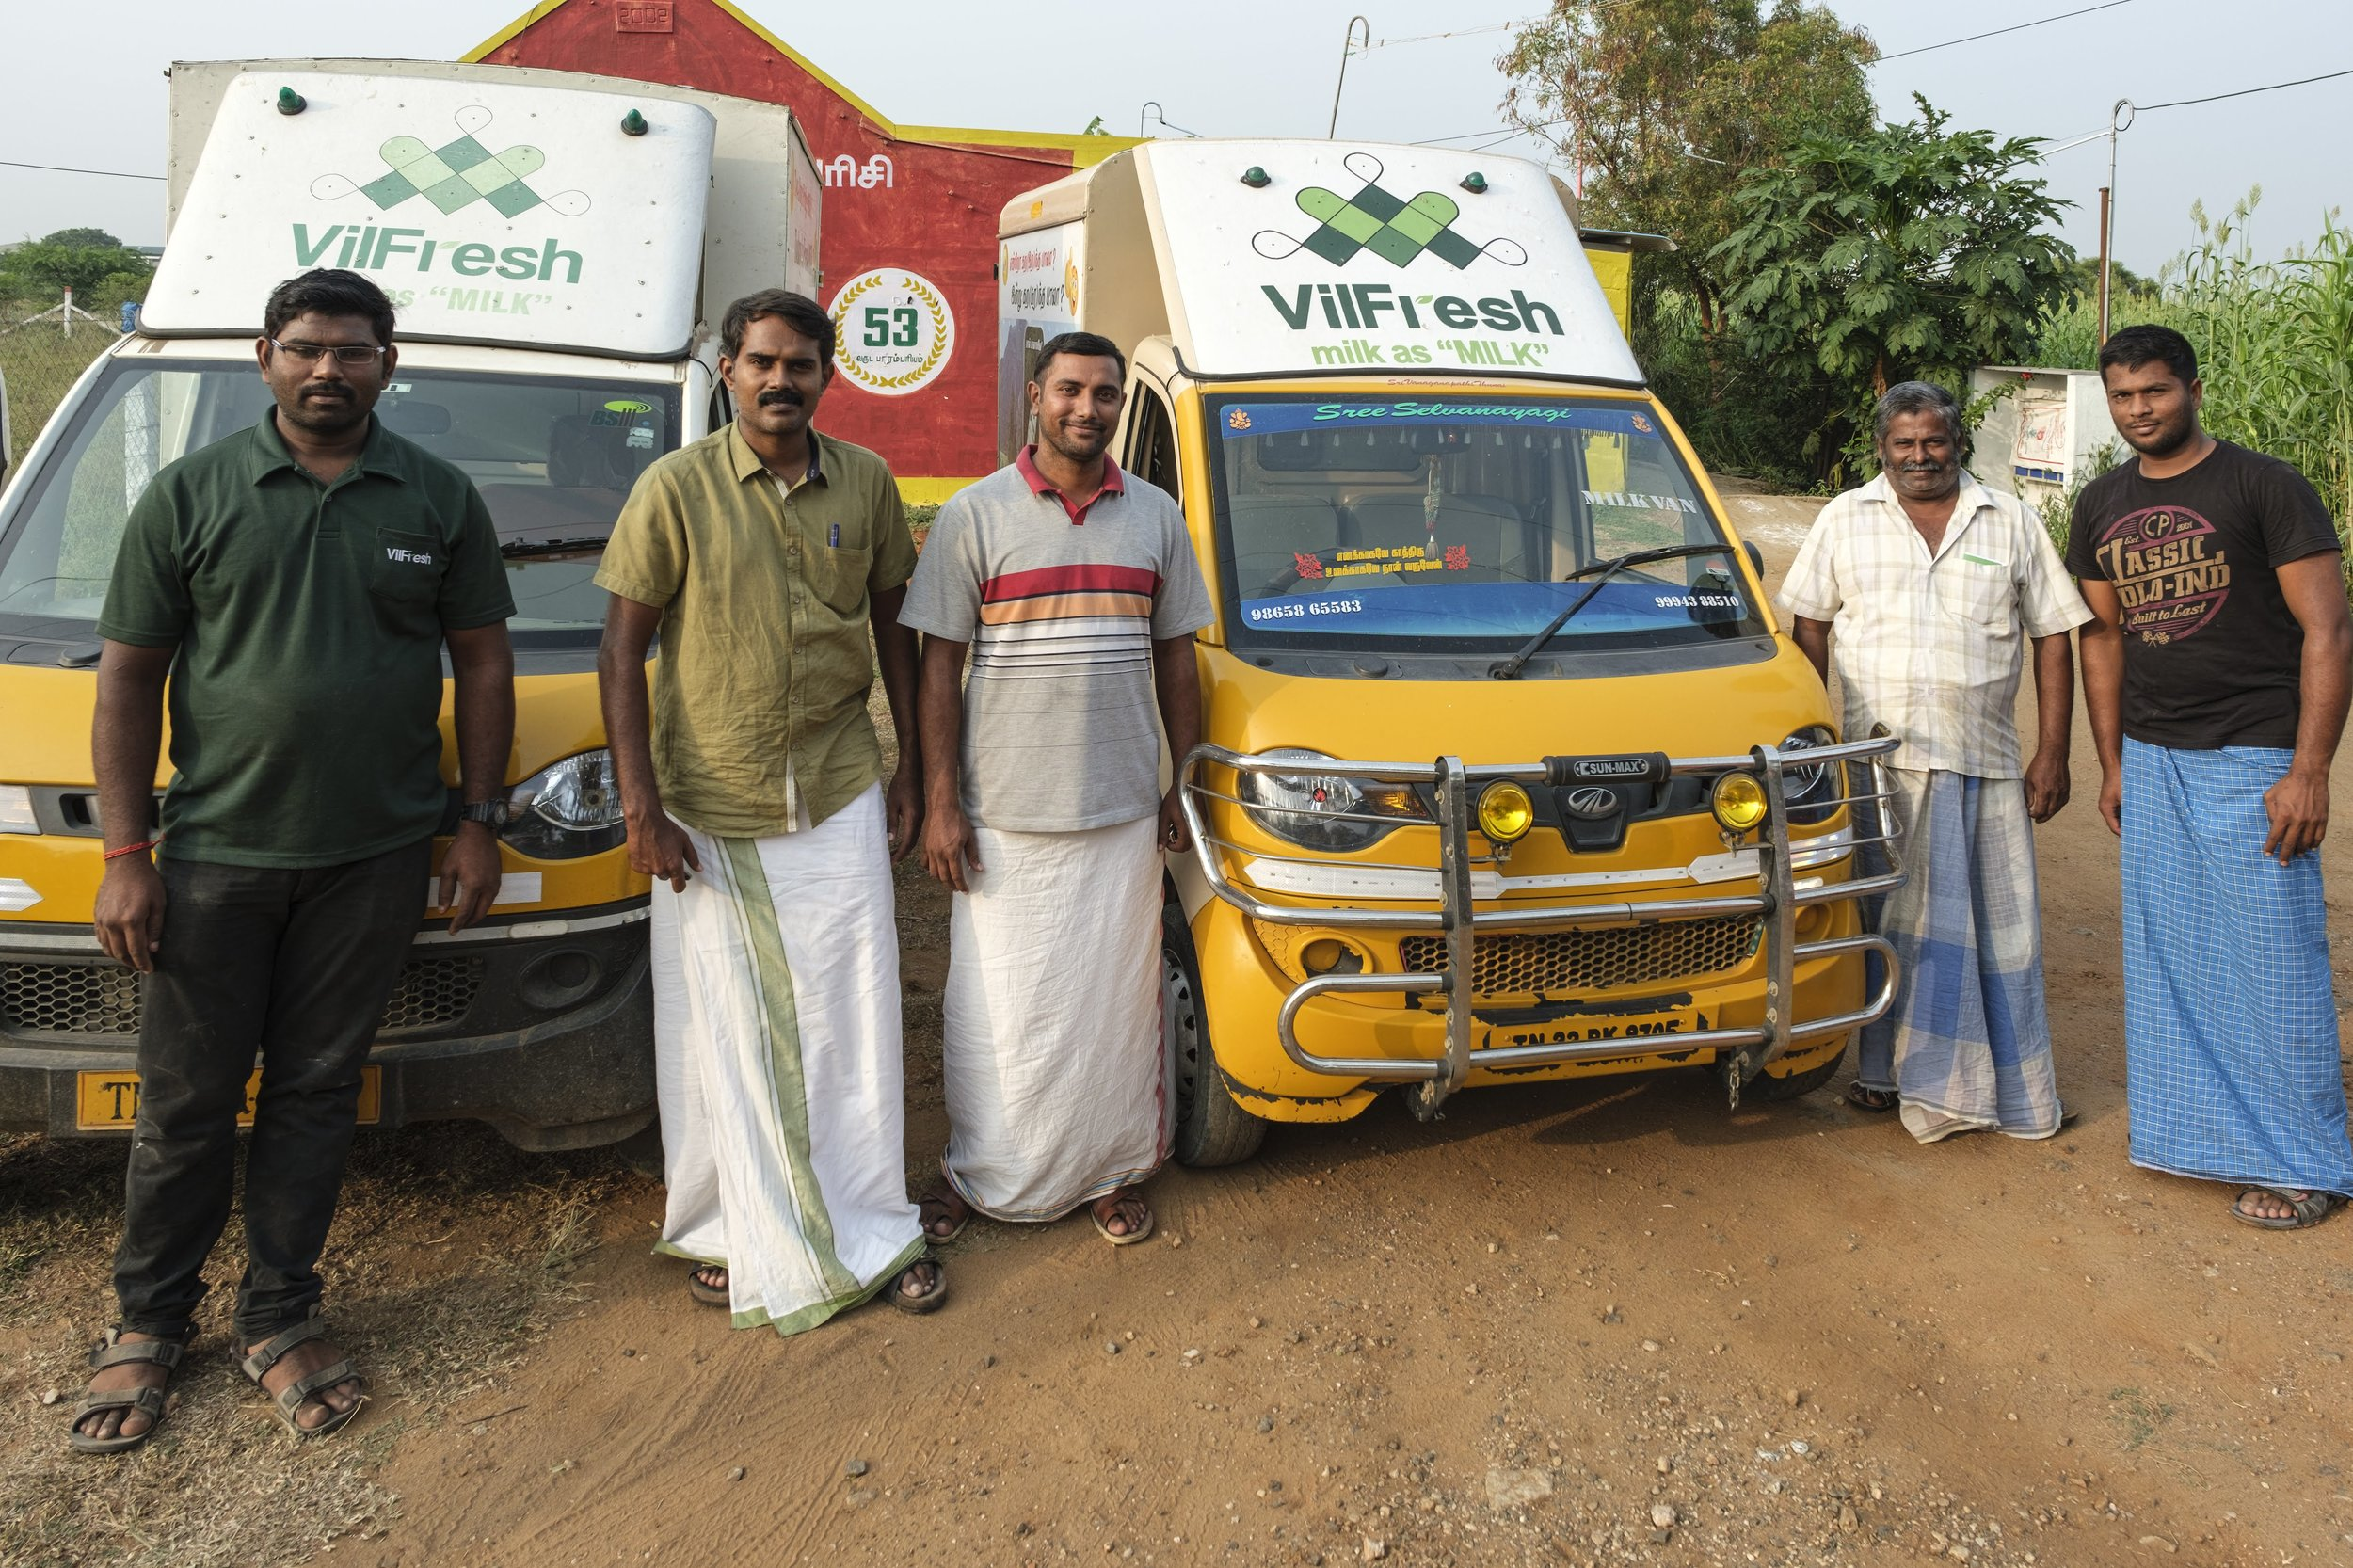 Selvakumar Varadharajan (second from the left), founder of Laymen Agro, with his team in front of Laymen Agro's Vilfresh trucks used to pick up milk from surrounding farms.